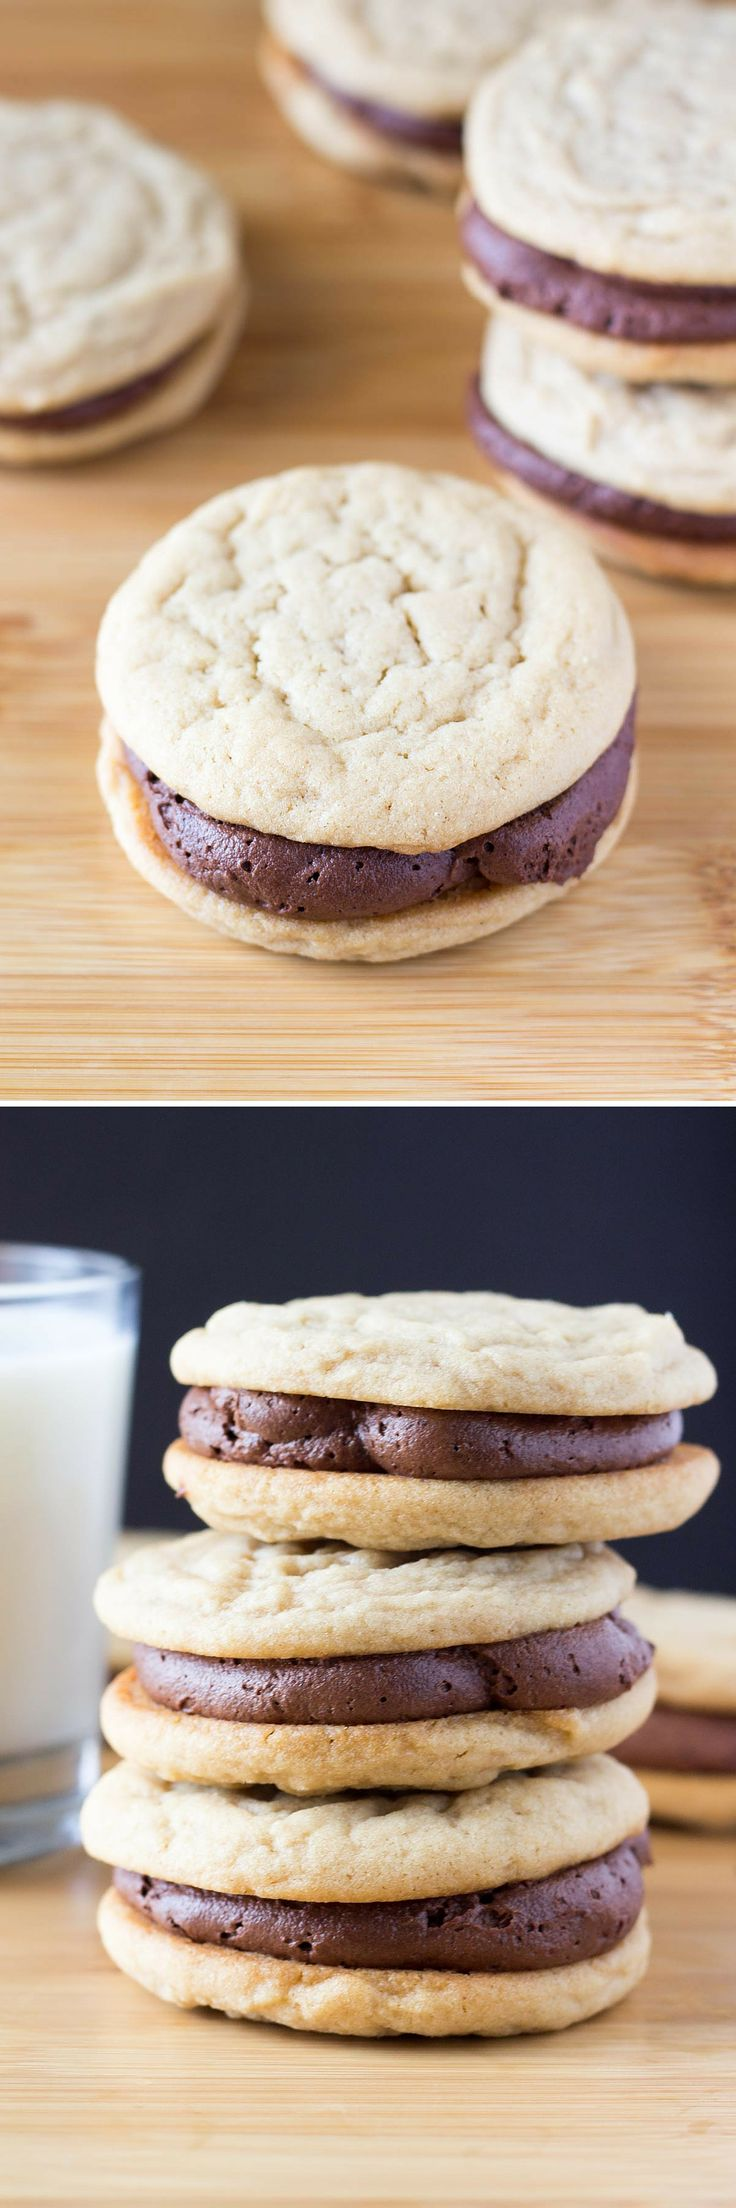 ... butter cups - these Peanut Butter Sandwich Cookies with Chocolate